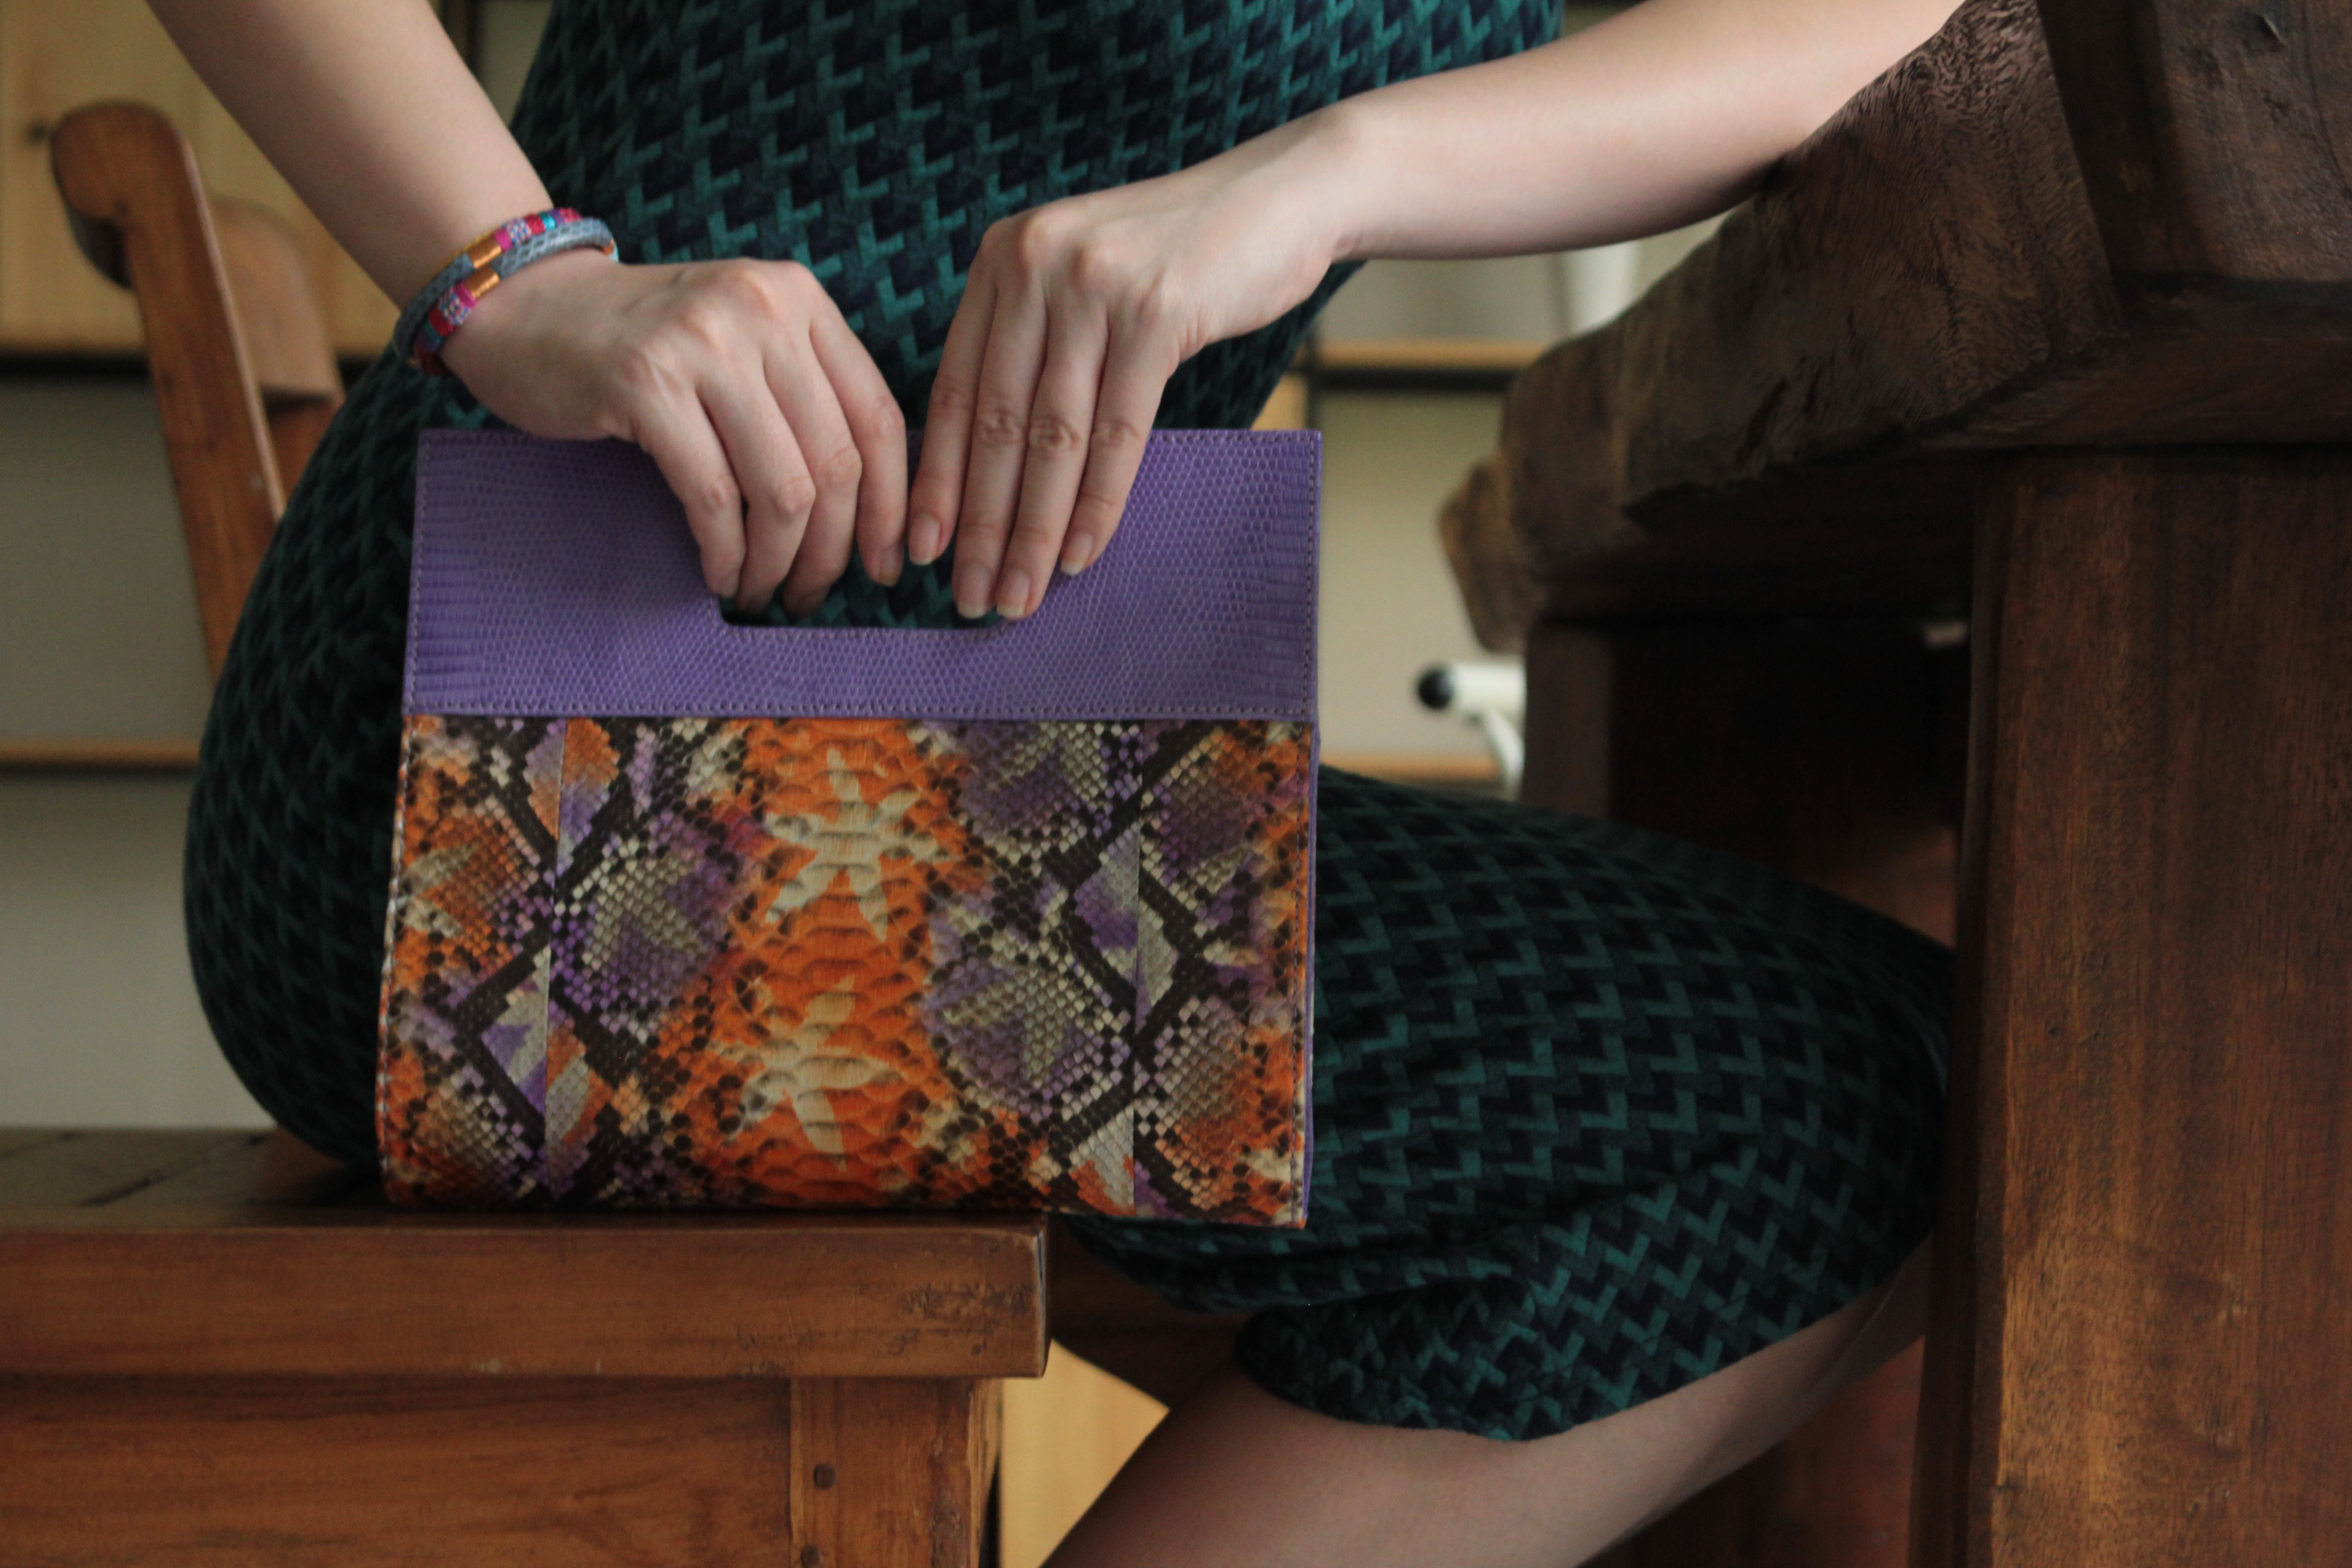 Bellasima Product - Bag from Python and Lizard Skin